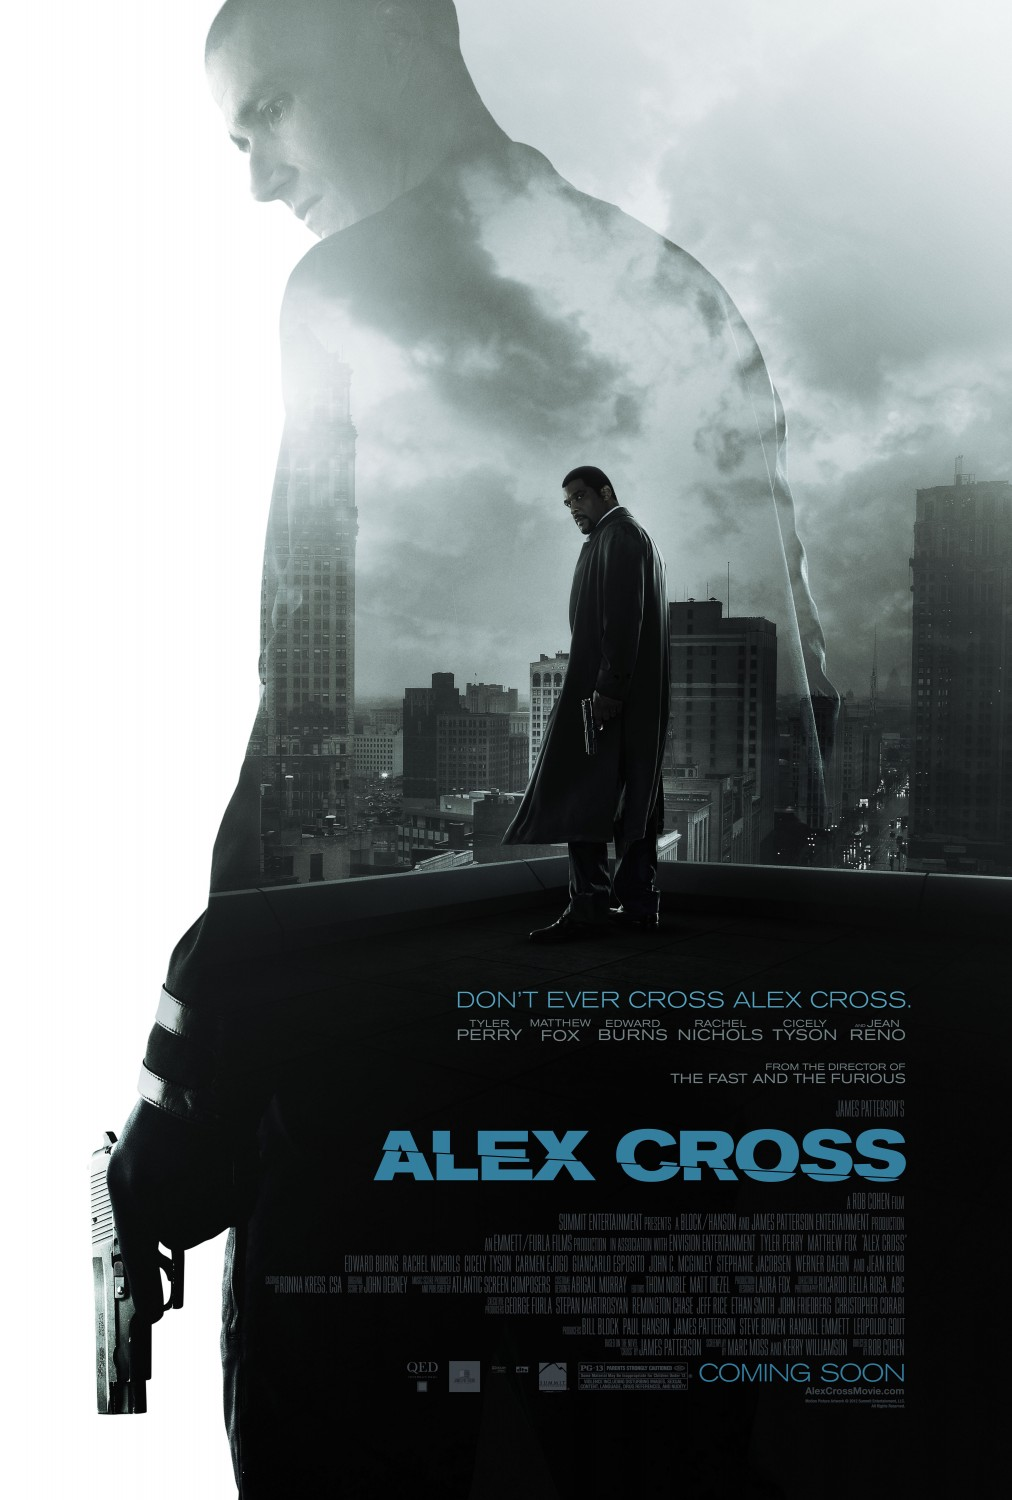 Alex Cross primer trailer.